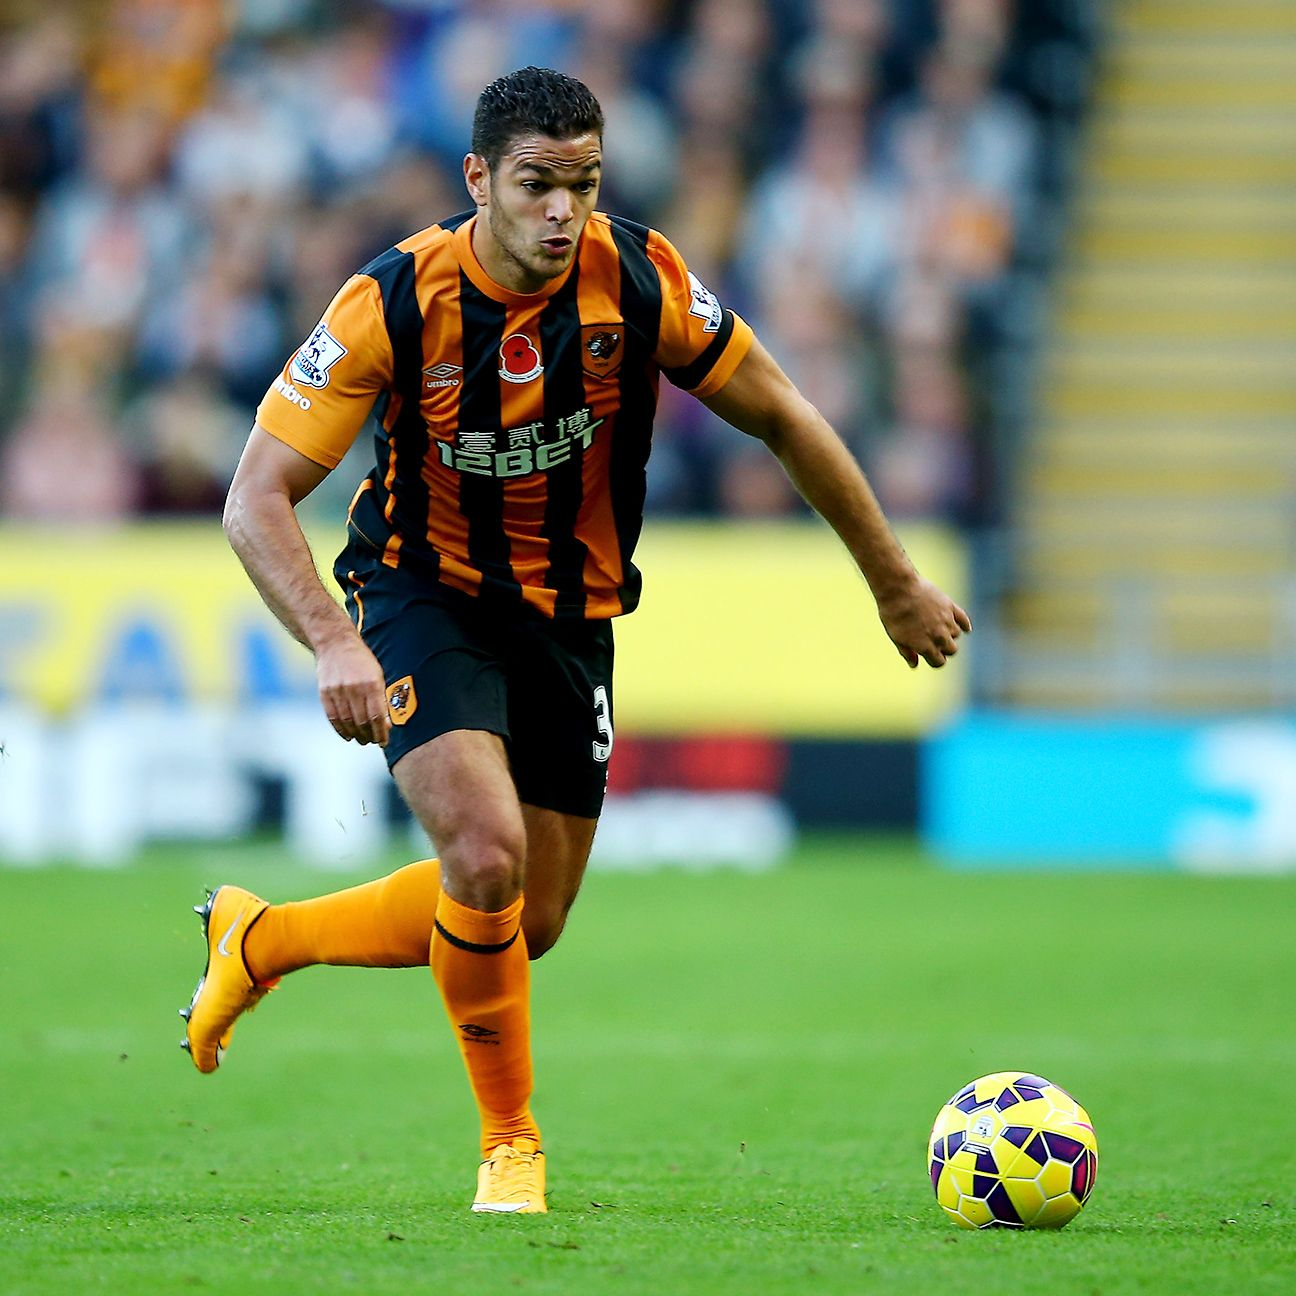 Hatem Ben Arfa's brief time at Hull City has come to an end.